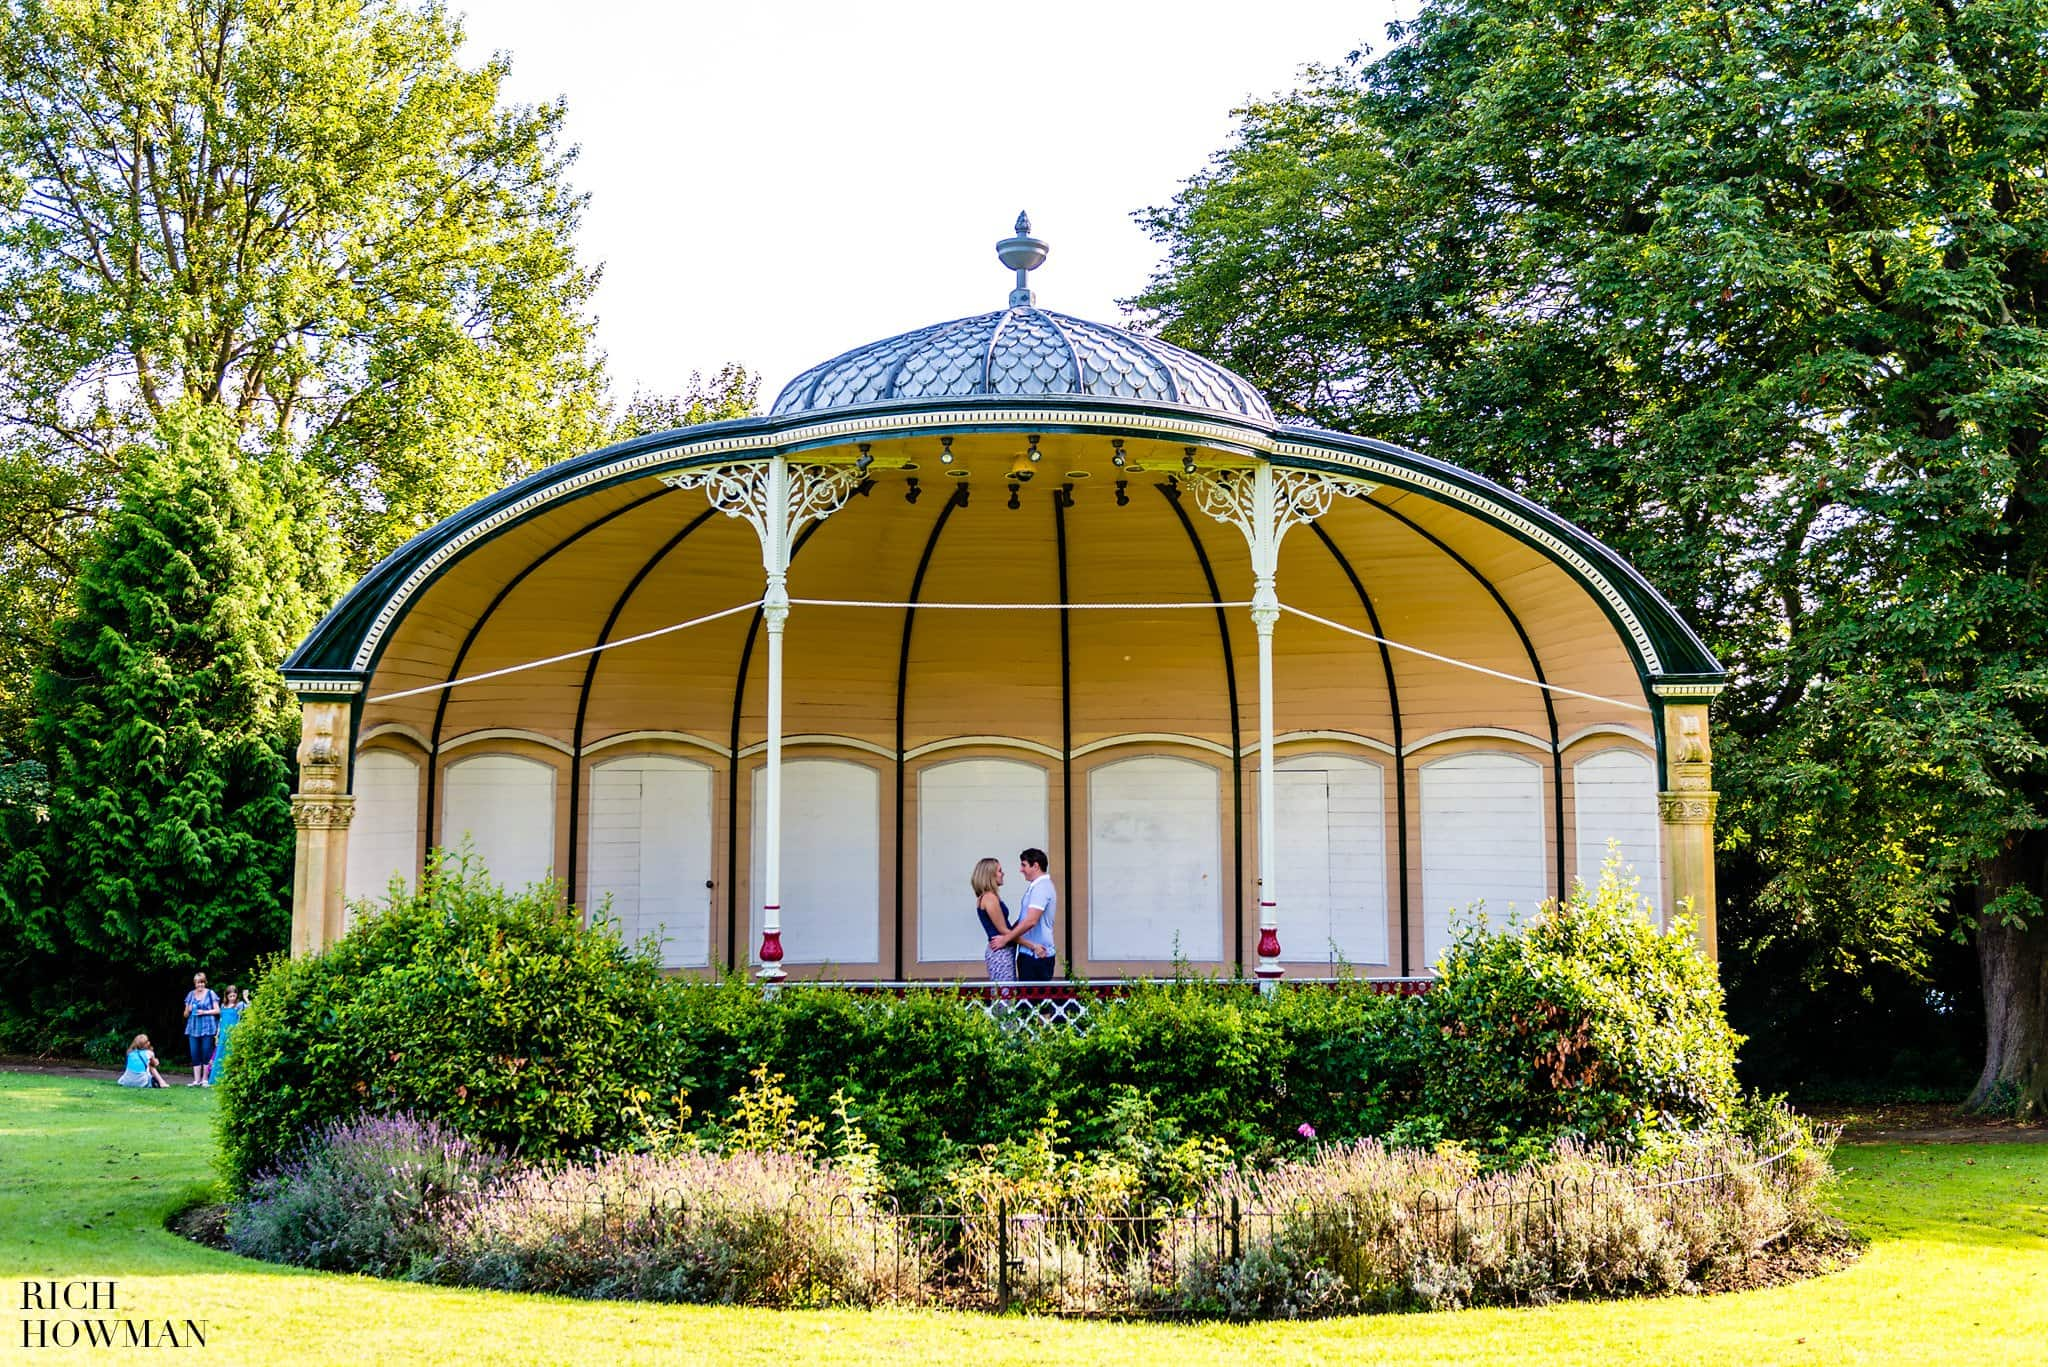 Royal Victoria Park Bandstand with engaged couple for their photo shoot, photographed by Bath Wedding Photographer Rich Howman